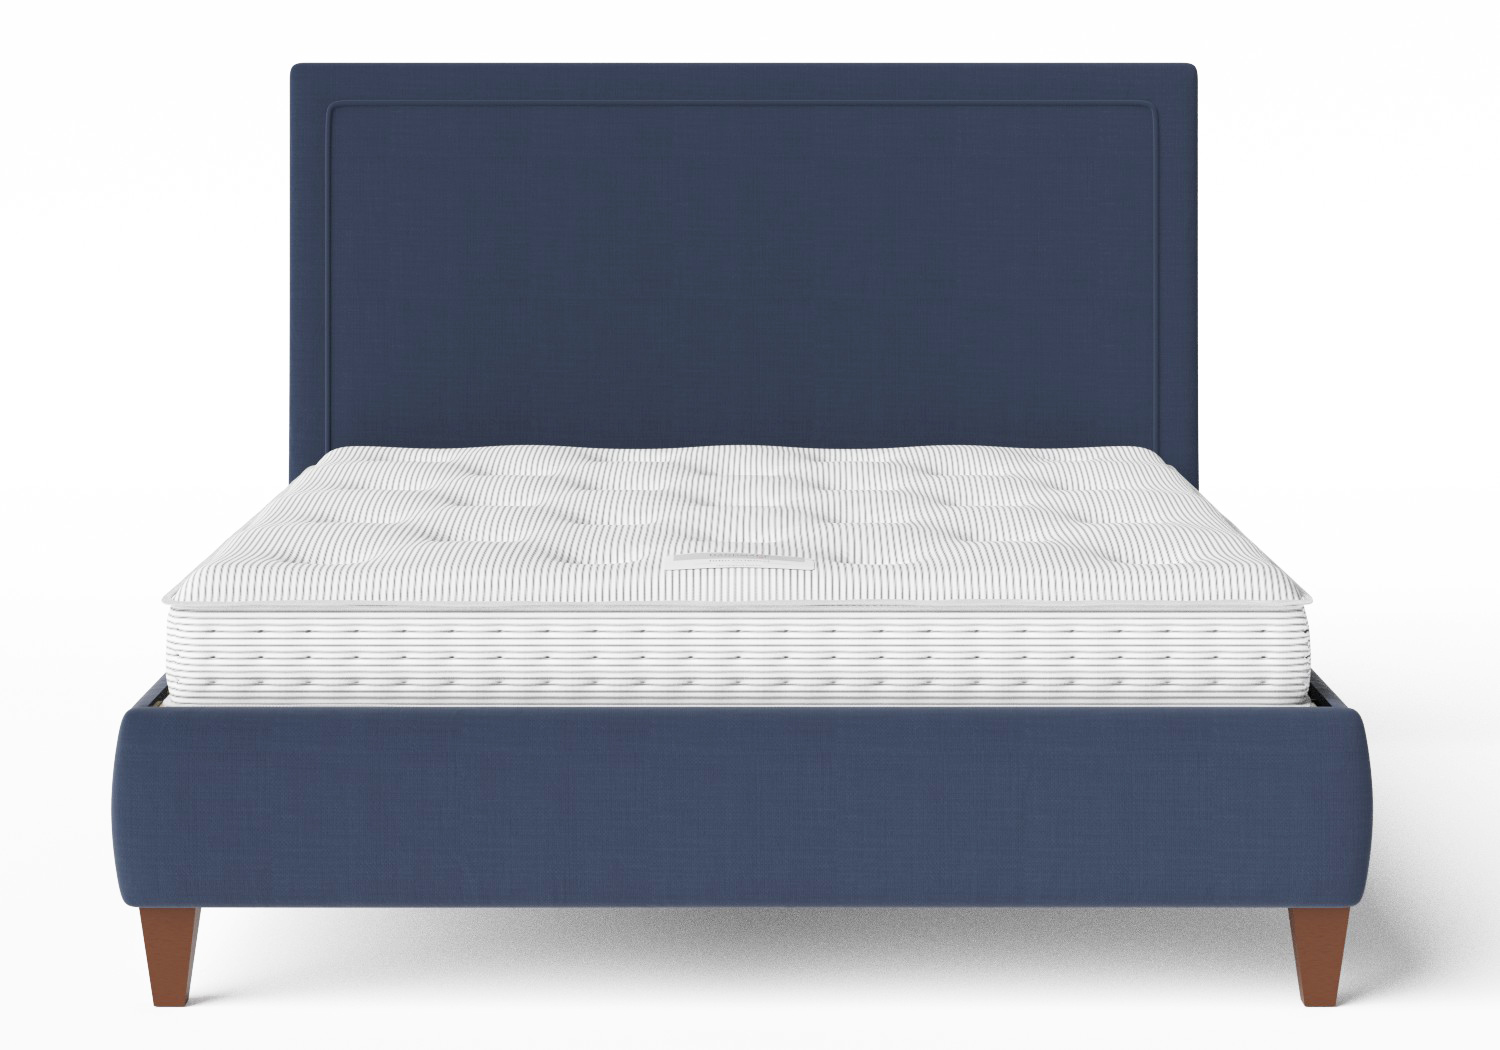 Yushan Upholstered Bed in Navy fabric shown with Juno 1 mattress